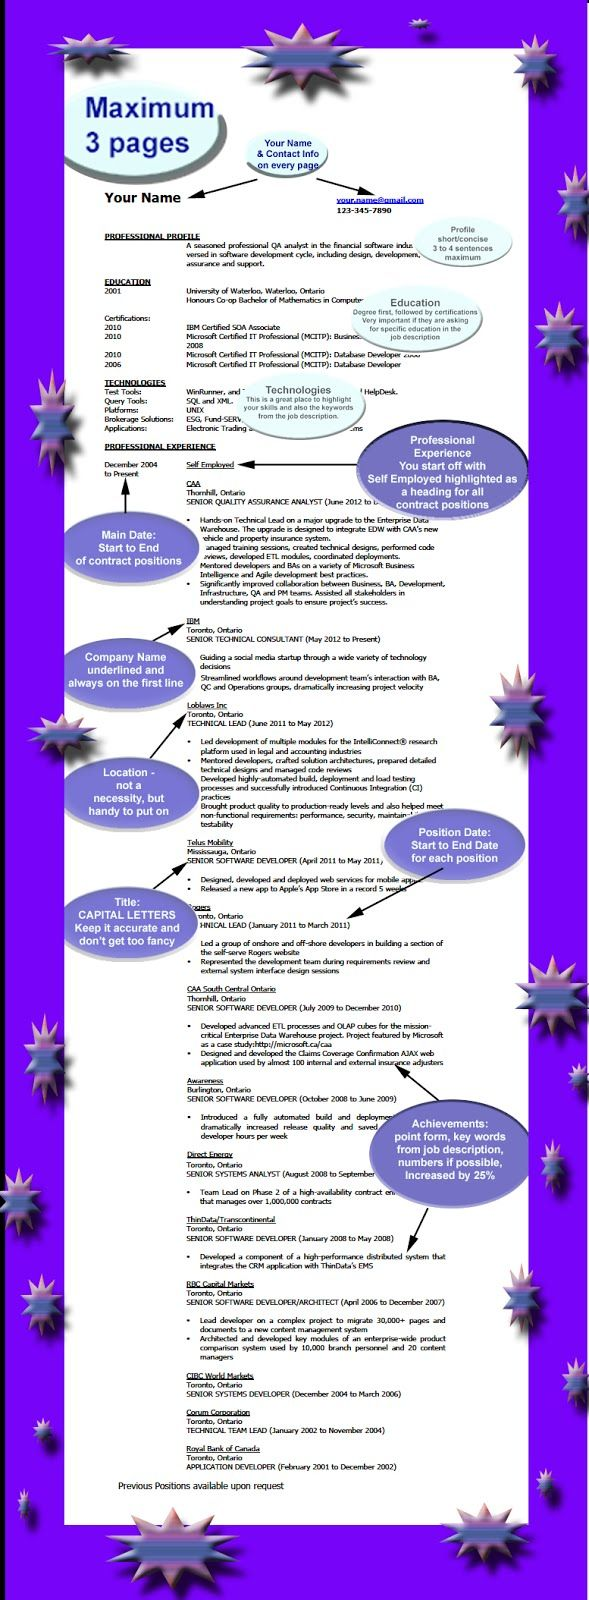 Self Employed Resume How To Be Successful Resume Infographic